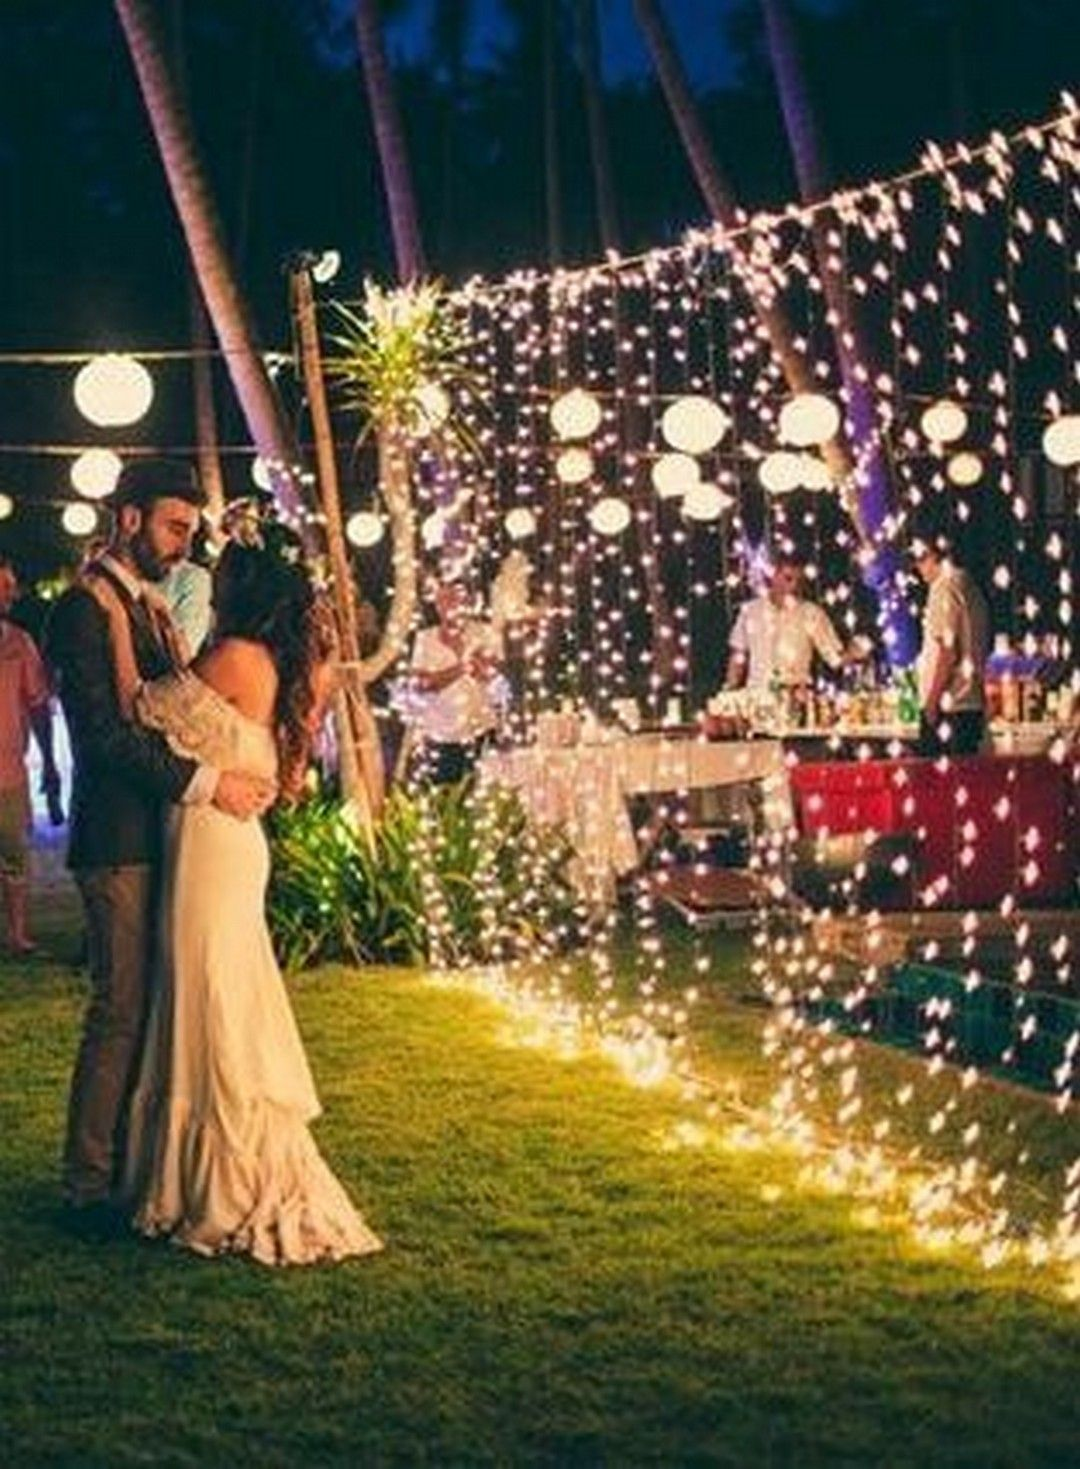 Garden wedding decorations night  cool  Sweet Ideas for Romantic Backyard Outdoor Weddings